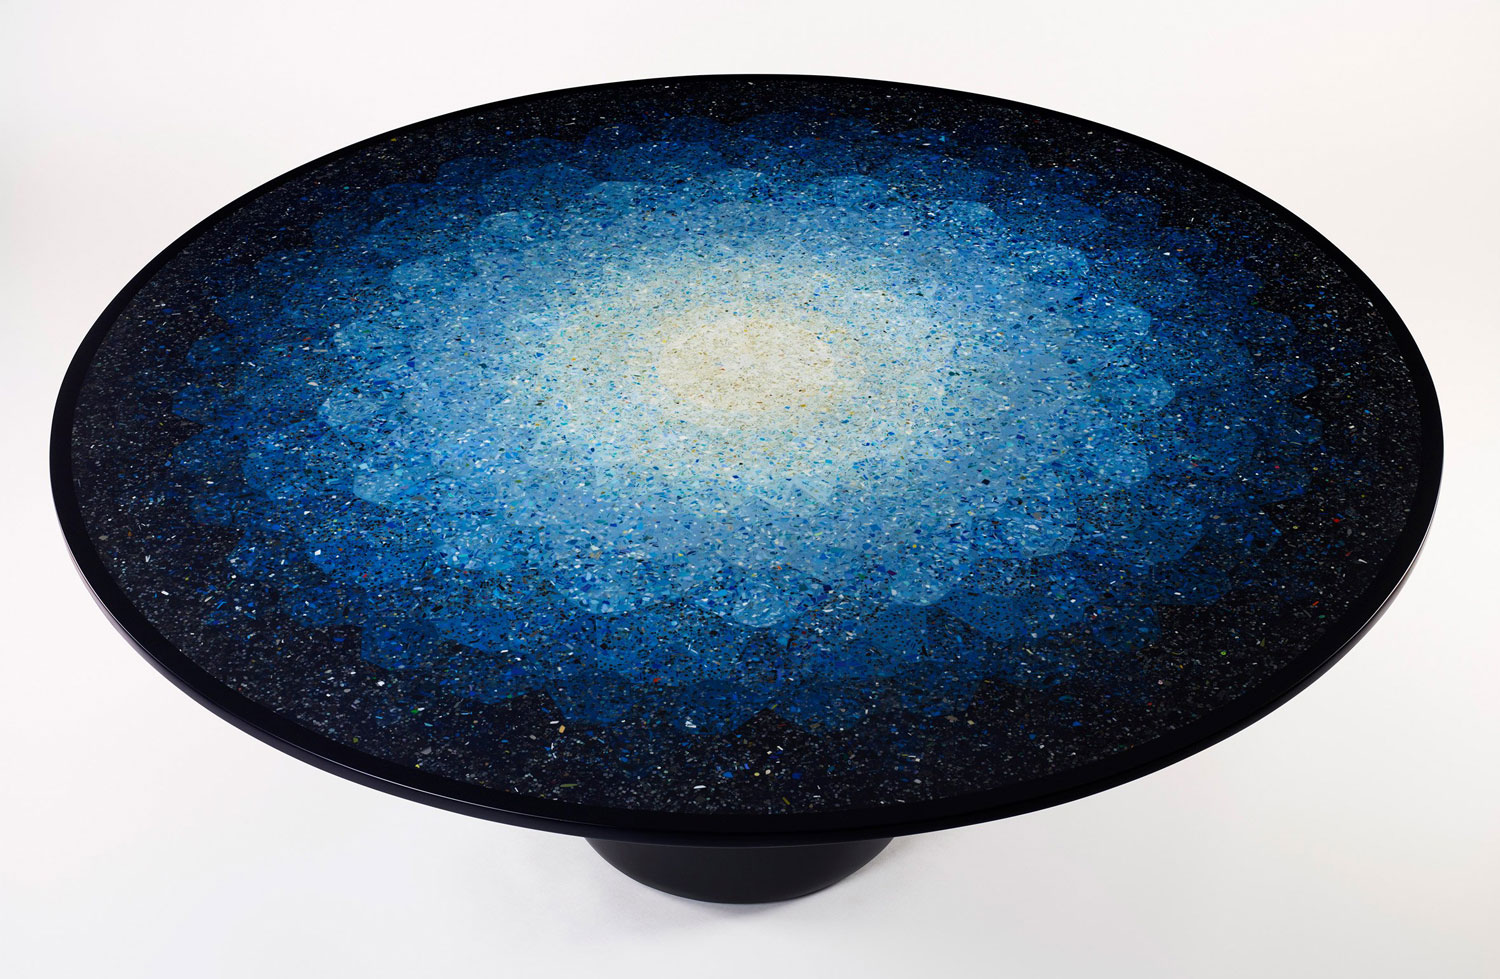 Brodie Neill's Terrazzo Effect Table Using Recycled Ocean Plastics | Yellowtrace